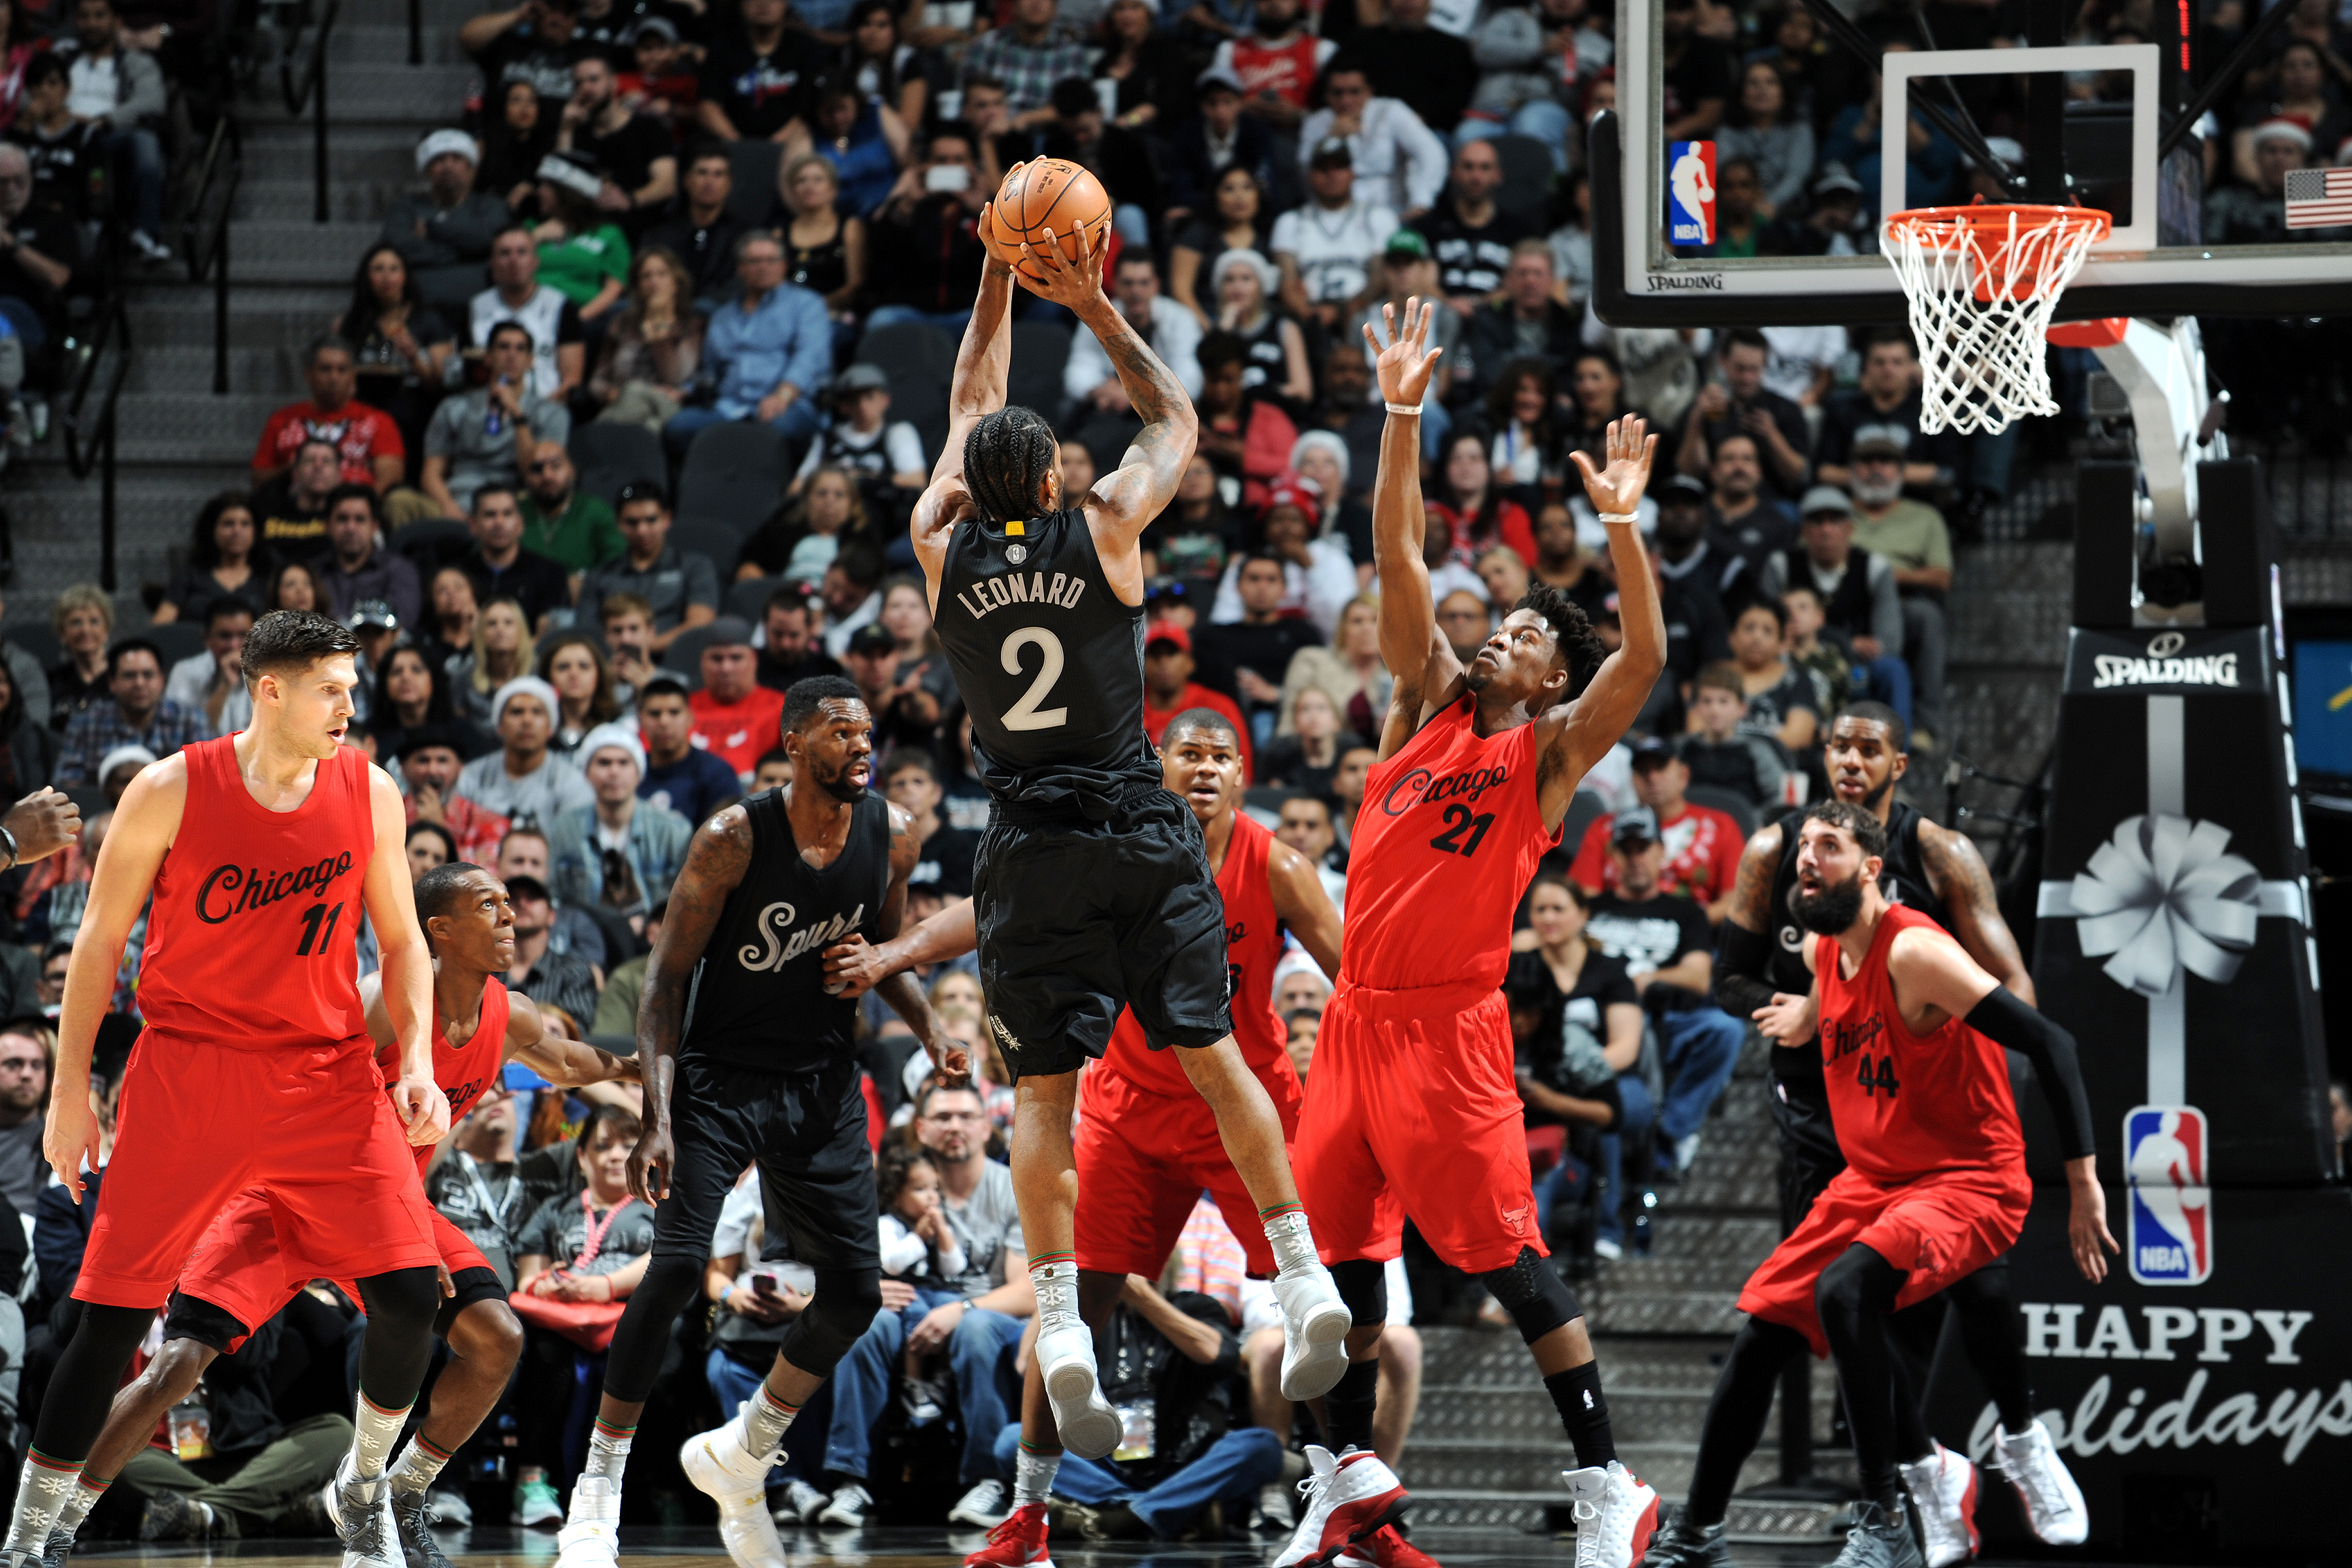 Kawhi Leonard #2 of the San Antonio Spurs shoots the ball during the game against the Chicago Bulls on December 25, 2016 at the AT&T Center in San Antonio, Texas.